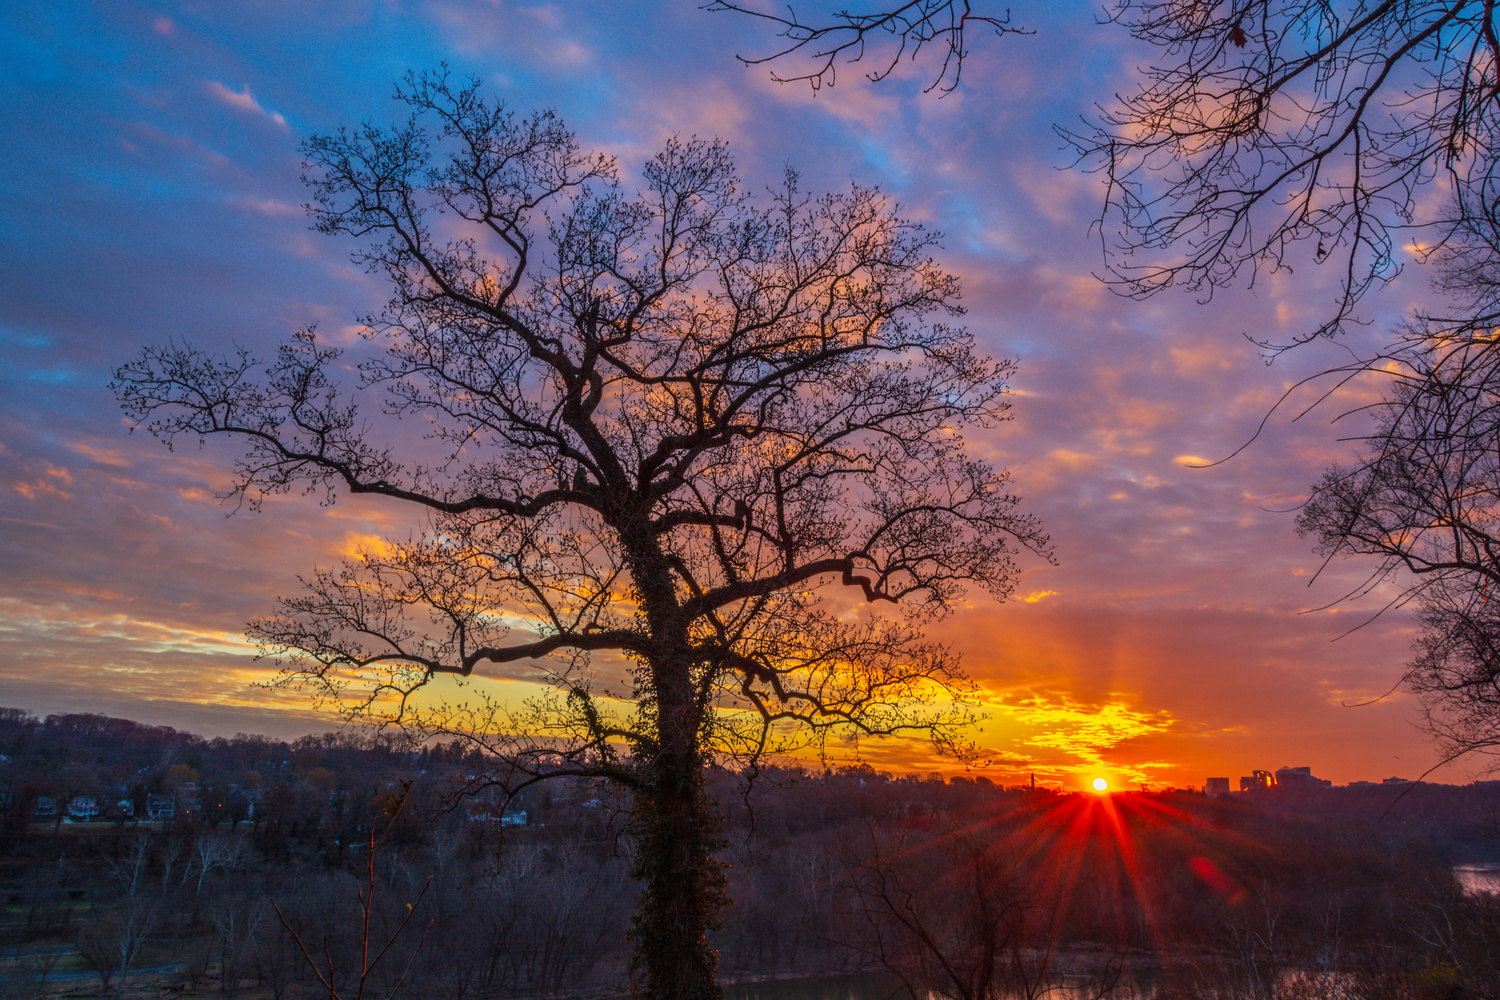 DC Sunrise by Nate Pool